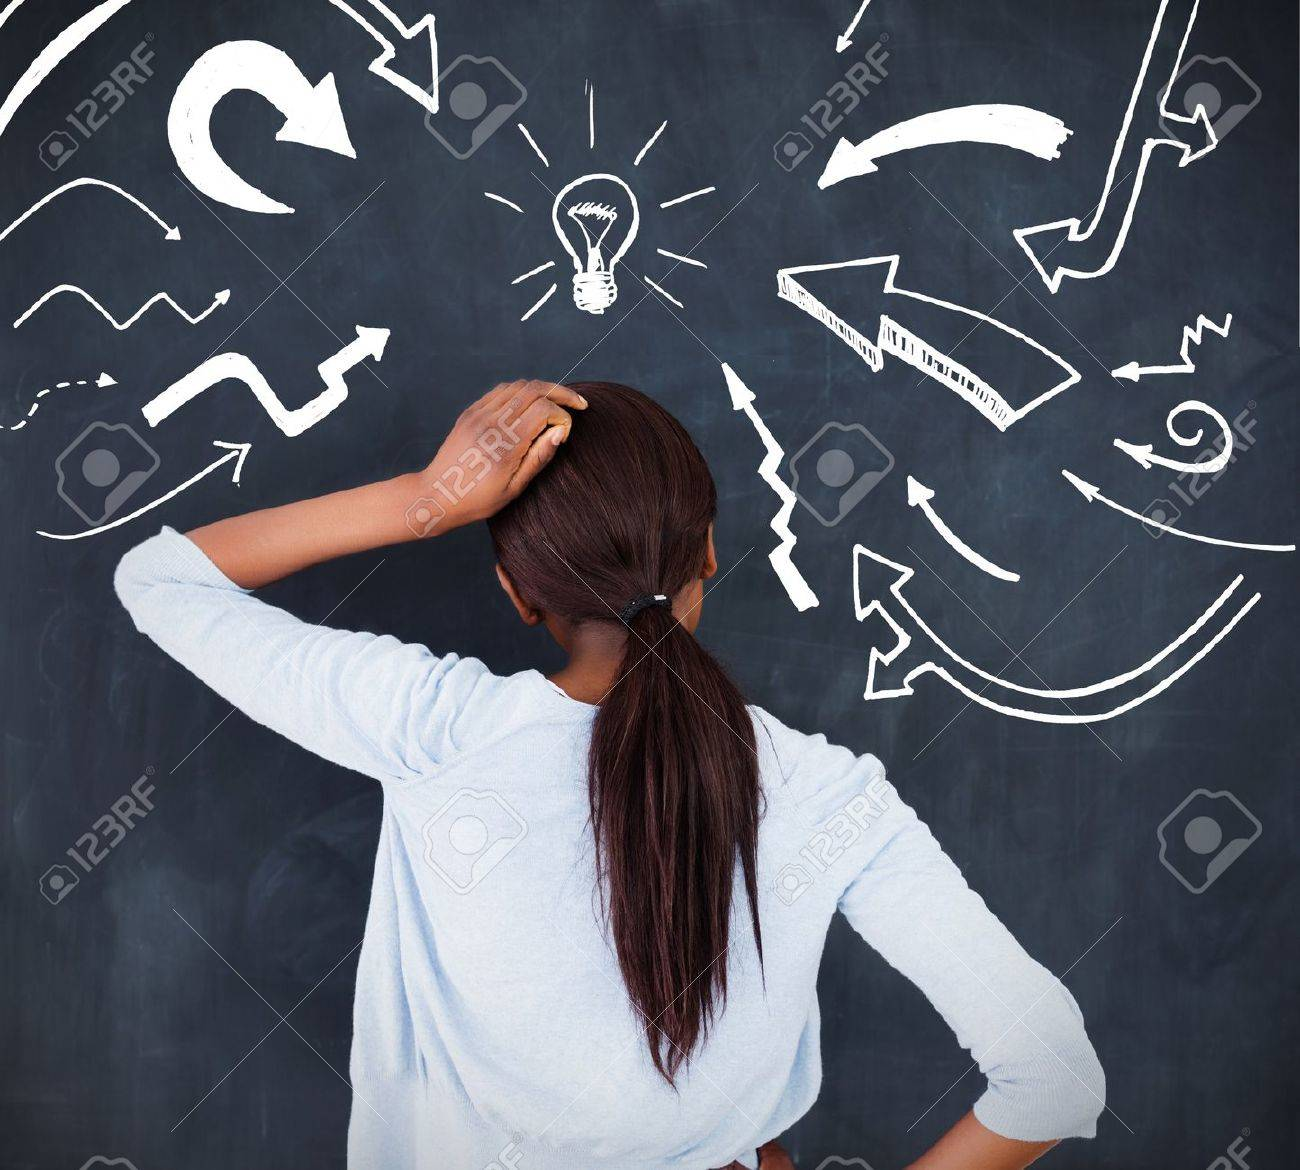 Rear view of a woman having an idea and putting her hand on her head Stock Photo - 20629347